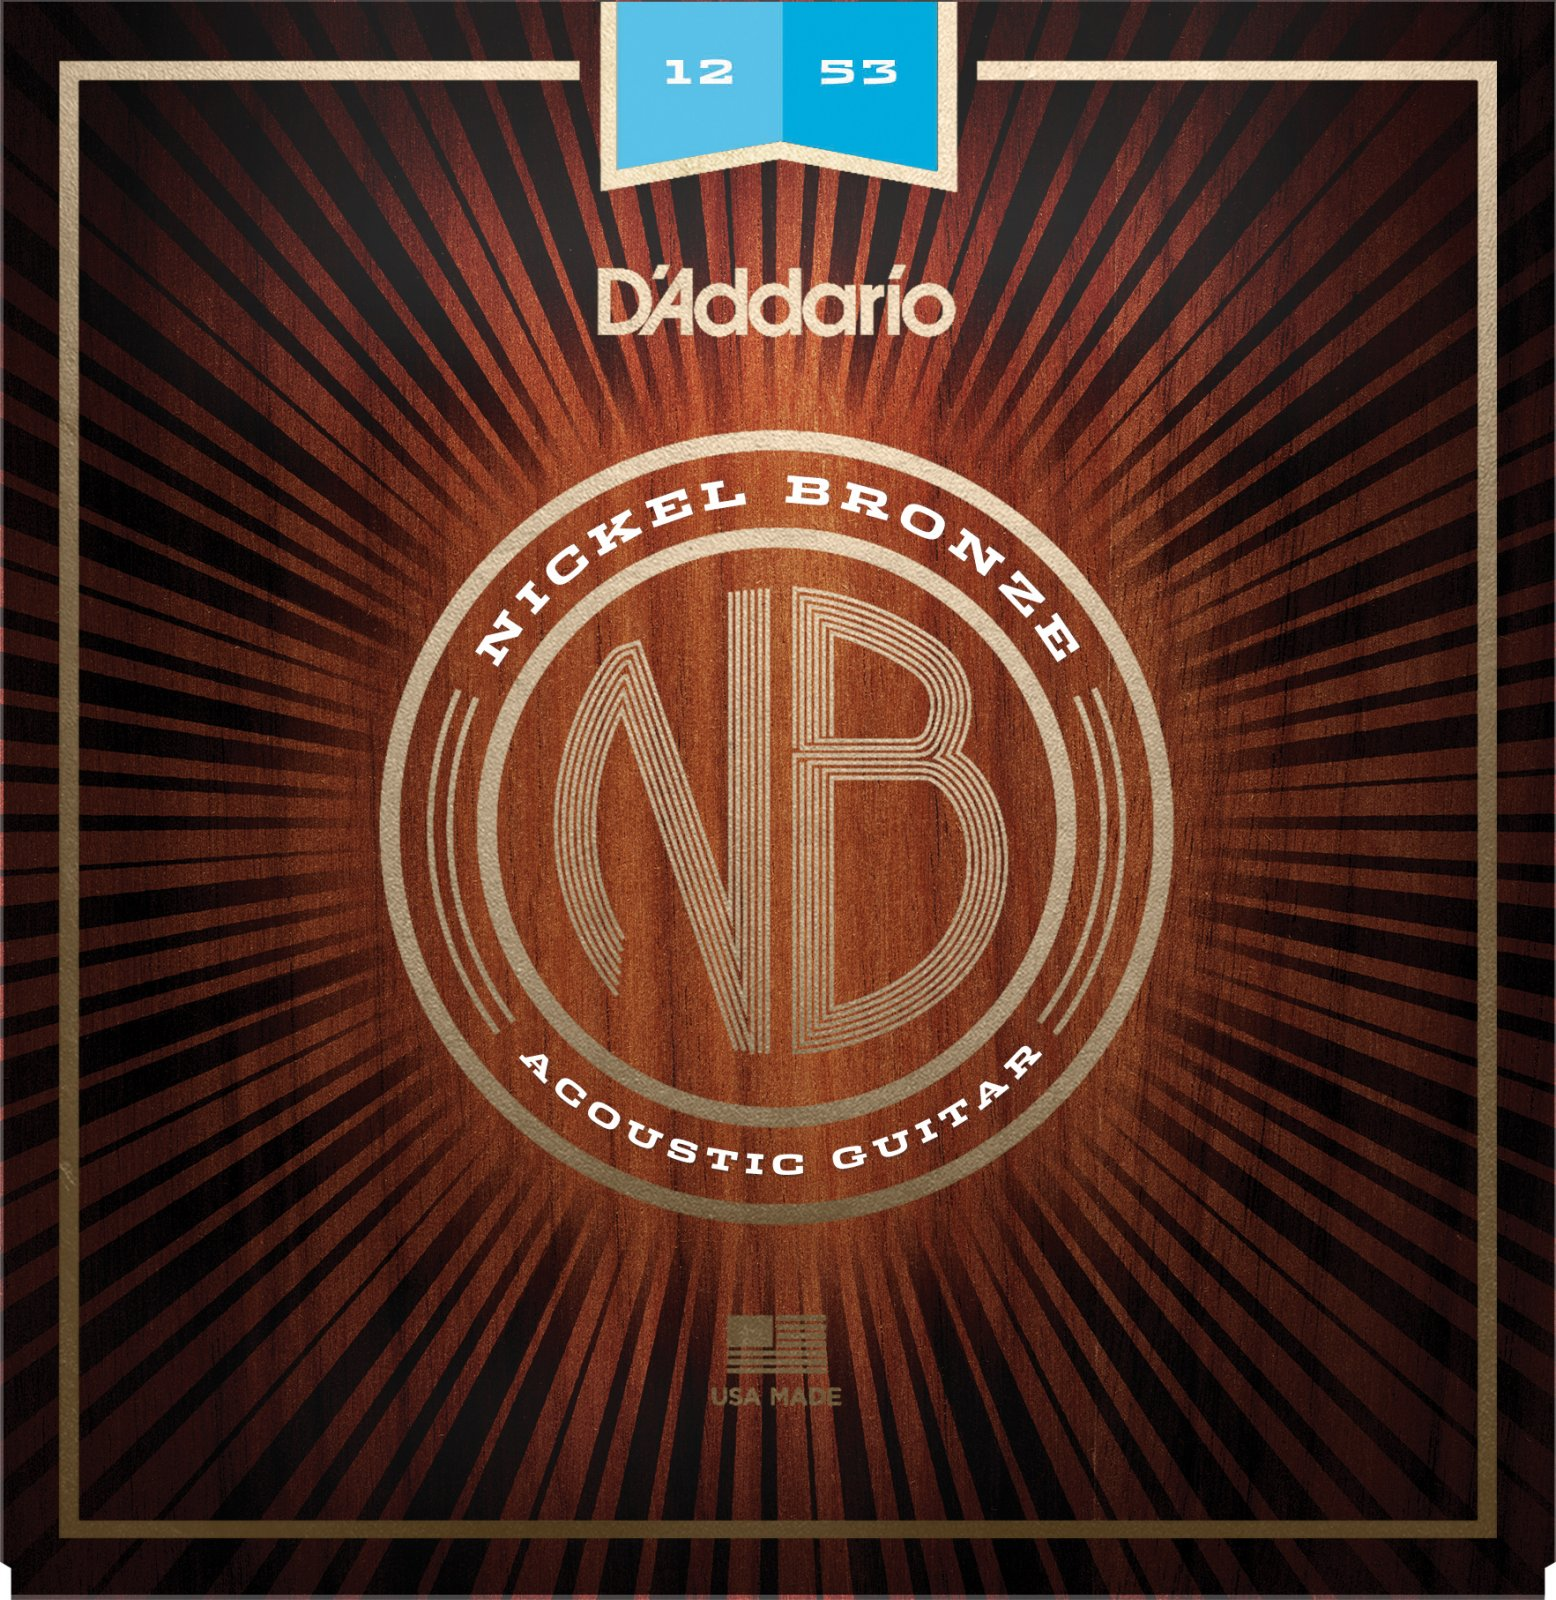 Daddario NB1253 Nickle Bronze Acoustic Light 12-53